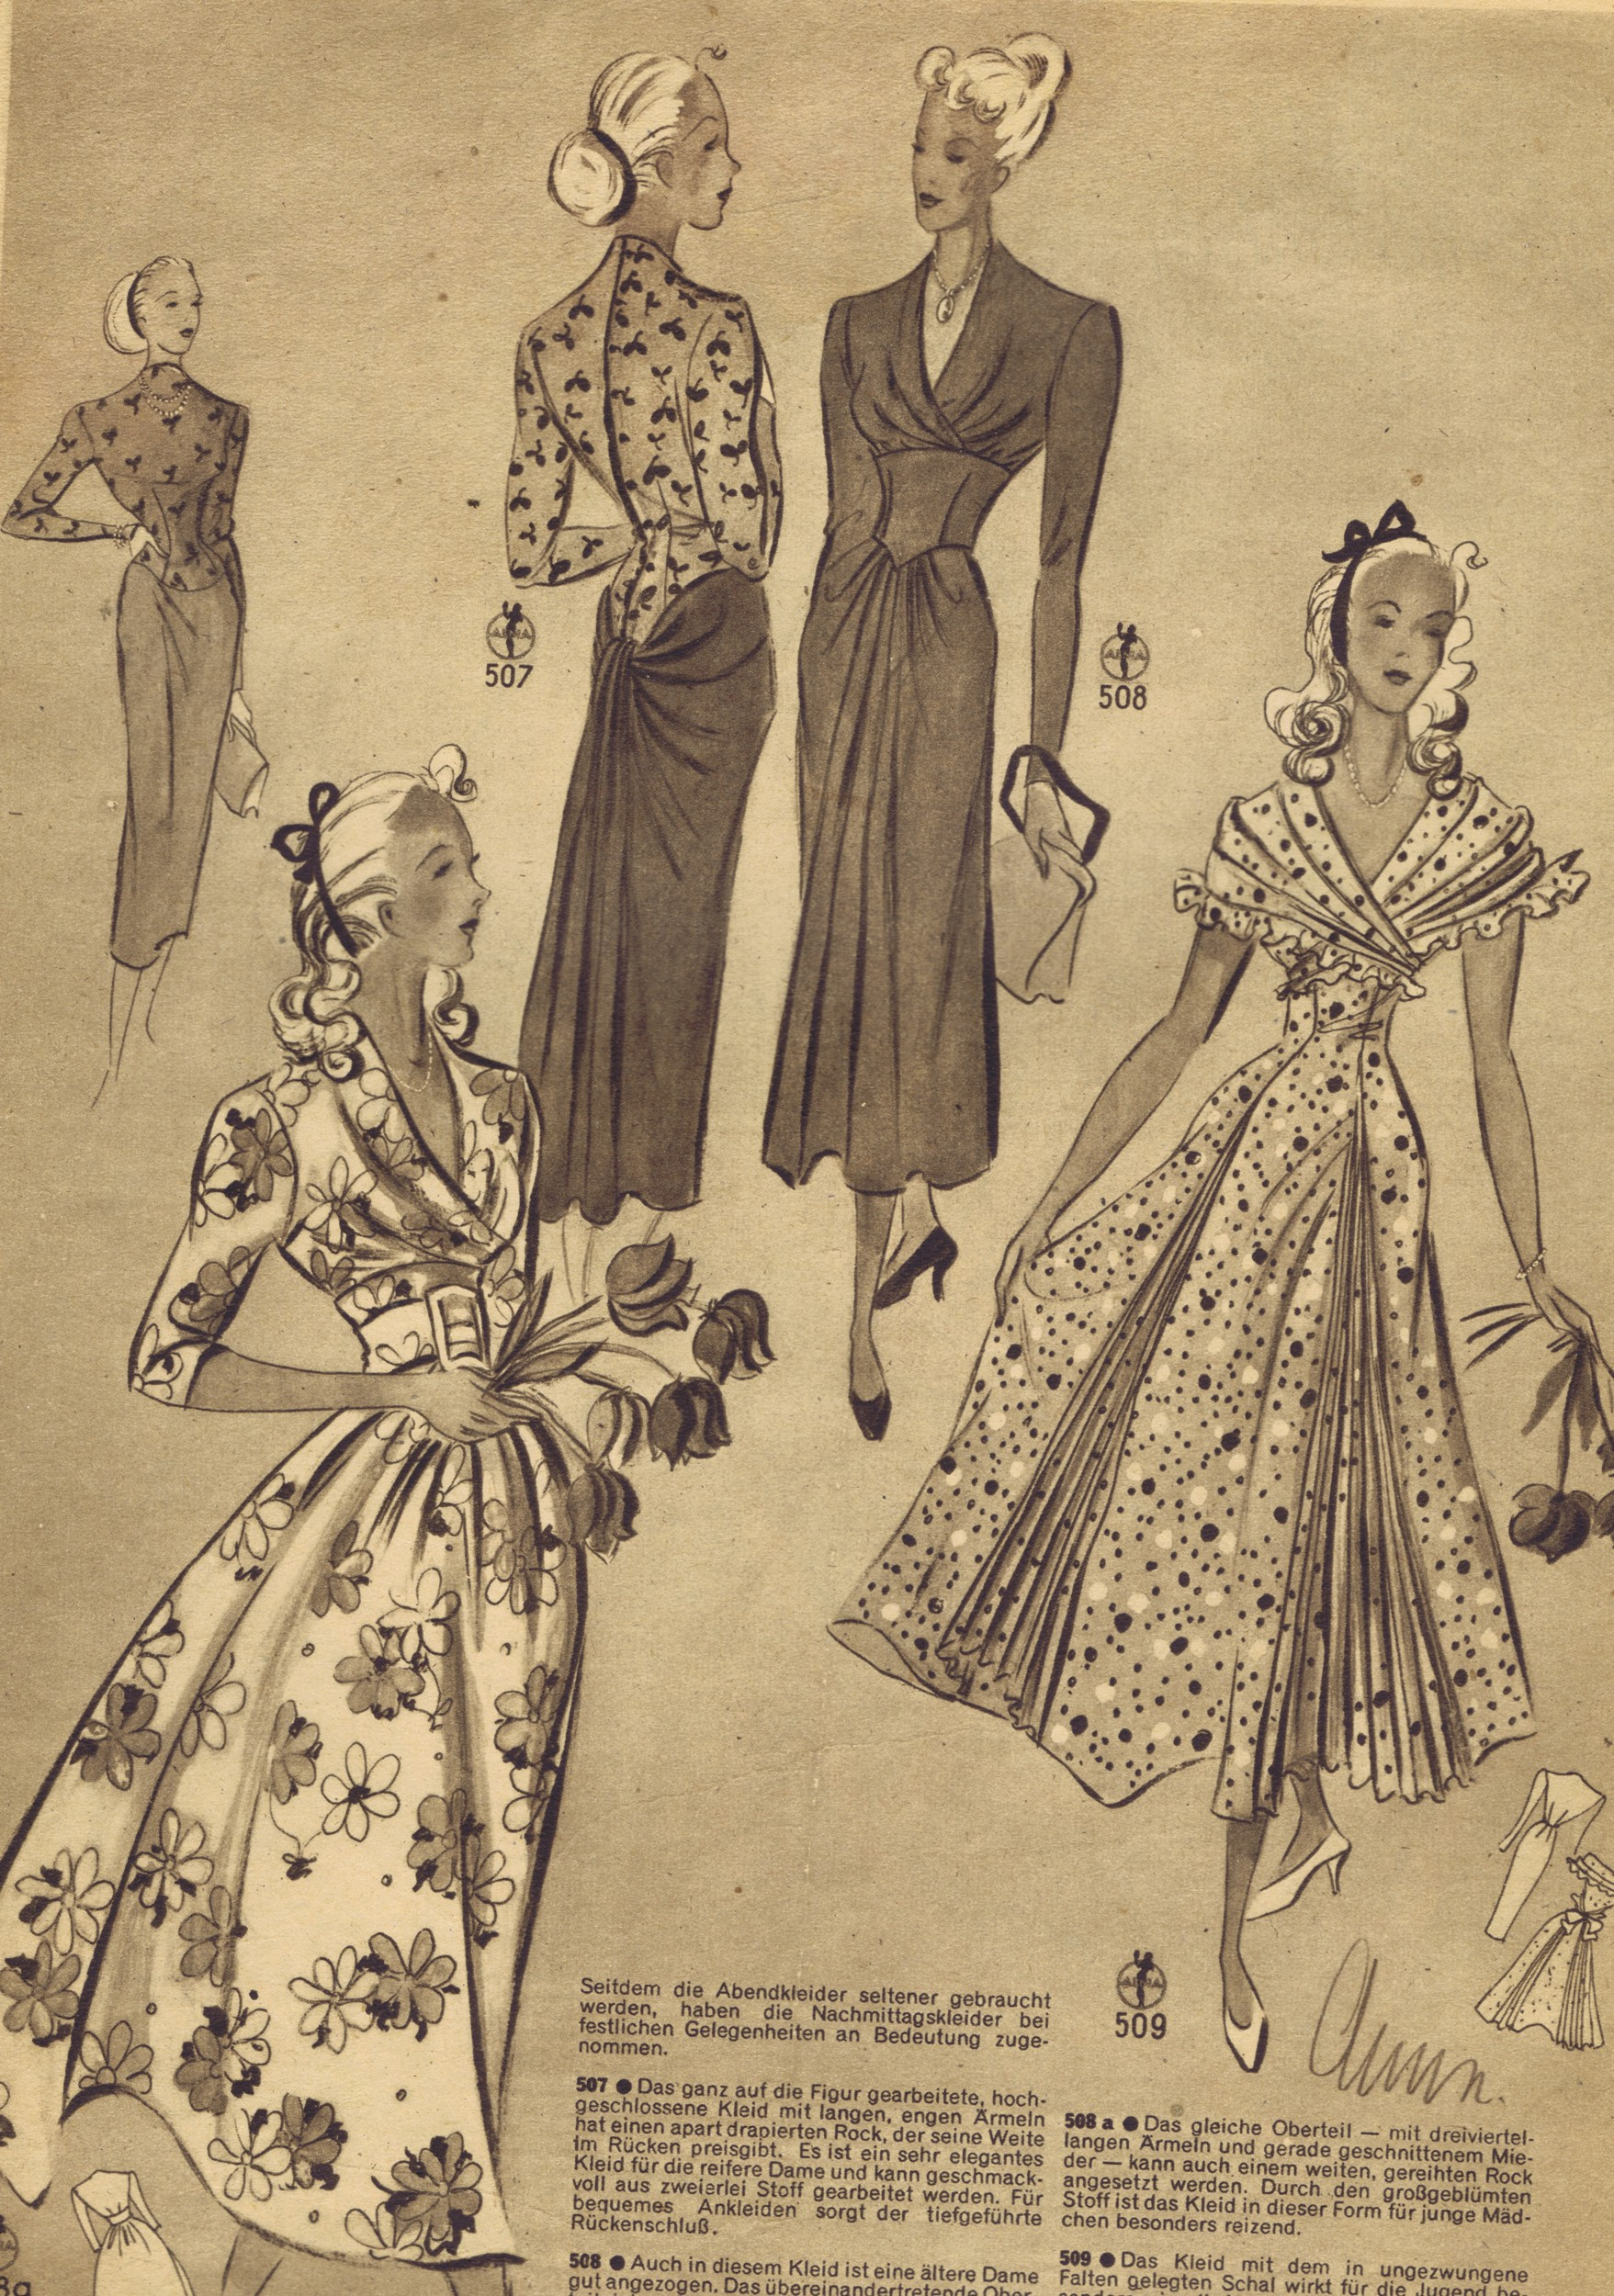 FREE Vintage 1940s Sewing Patterns | German Die Alma Mode ...